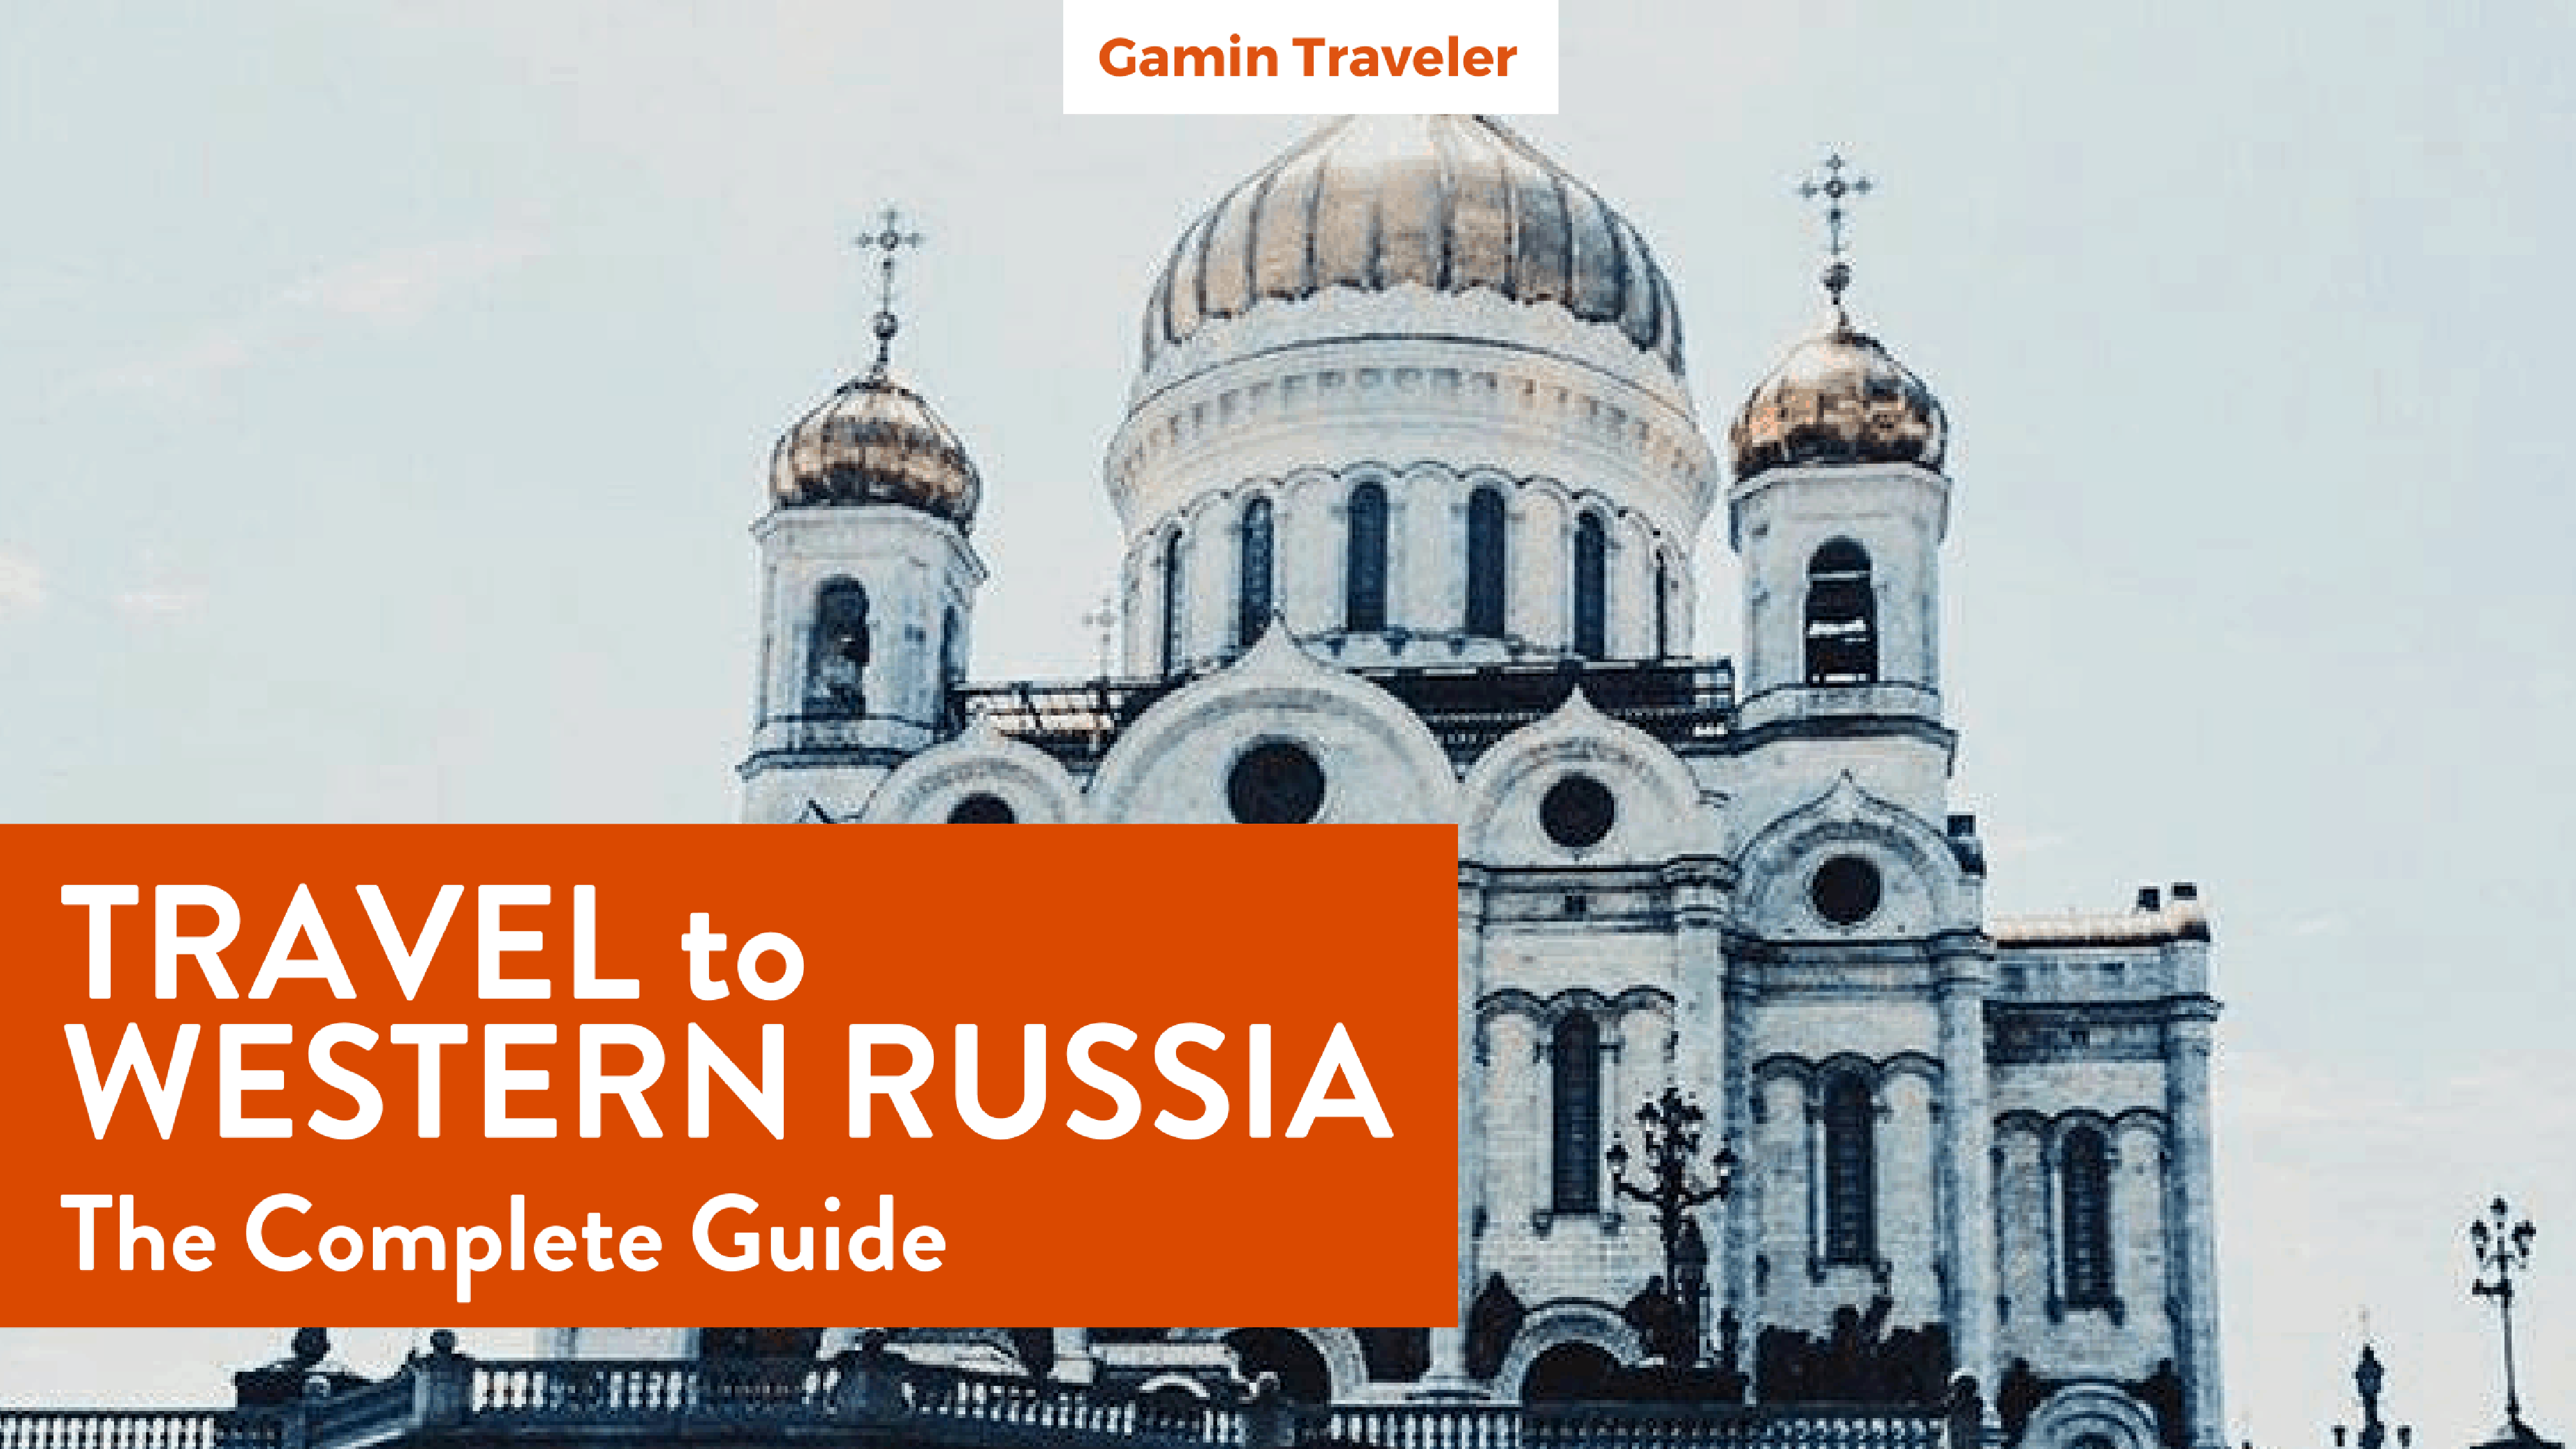 the-complete-guide-to-travel-western-russia-by-gamintraveler-travel-blog-facebook